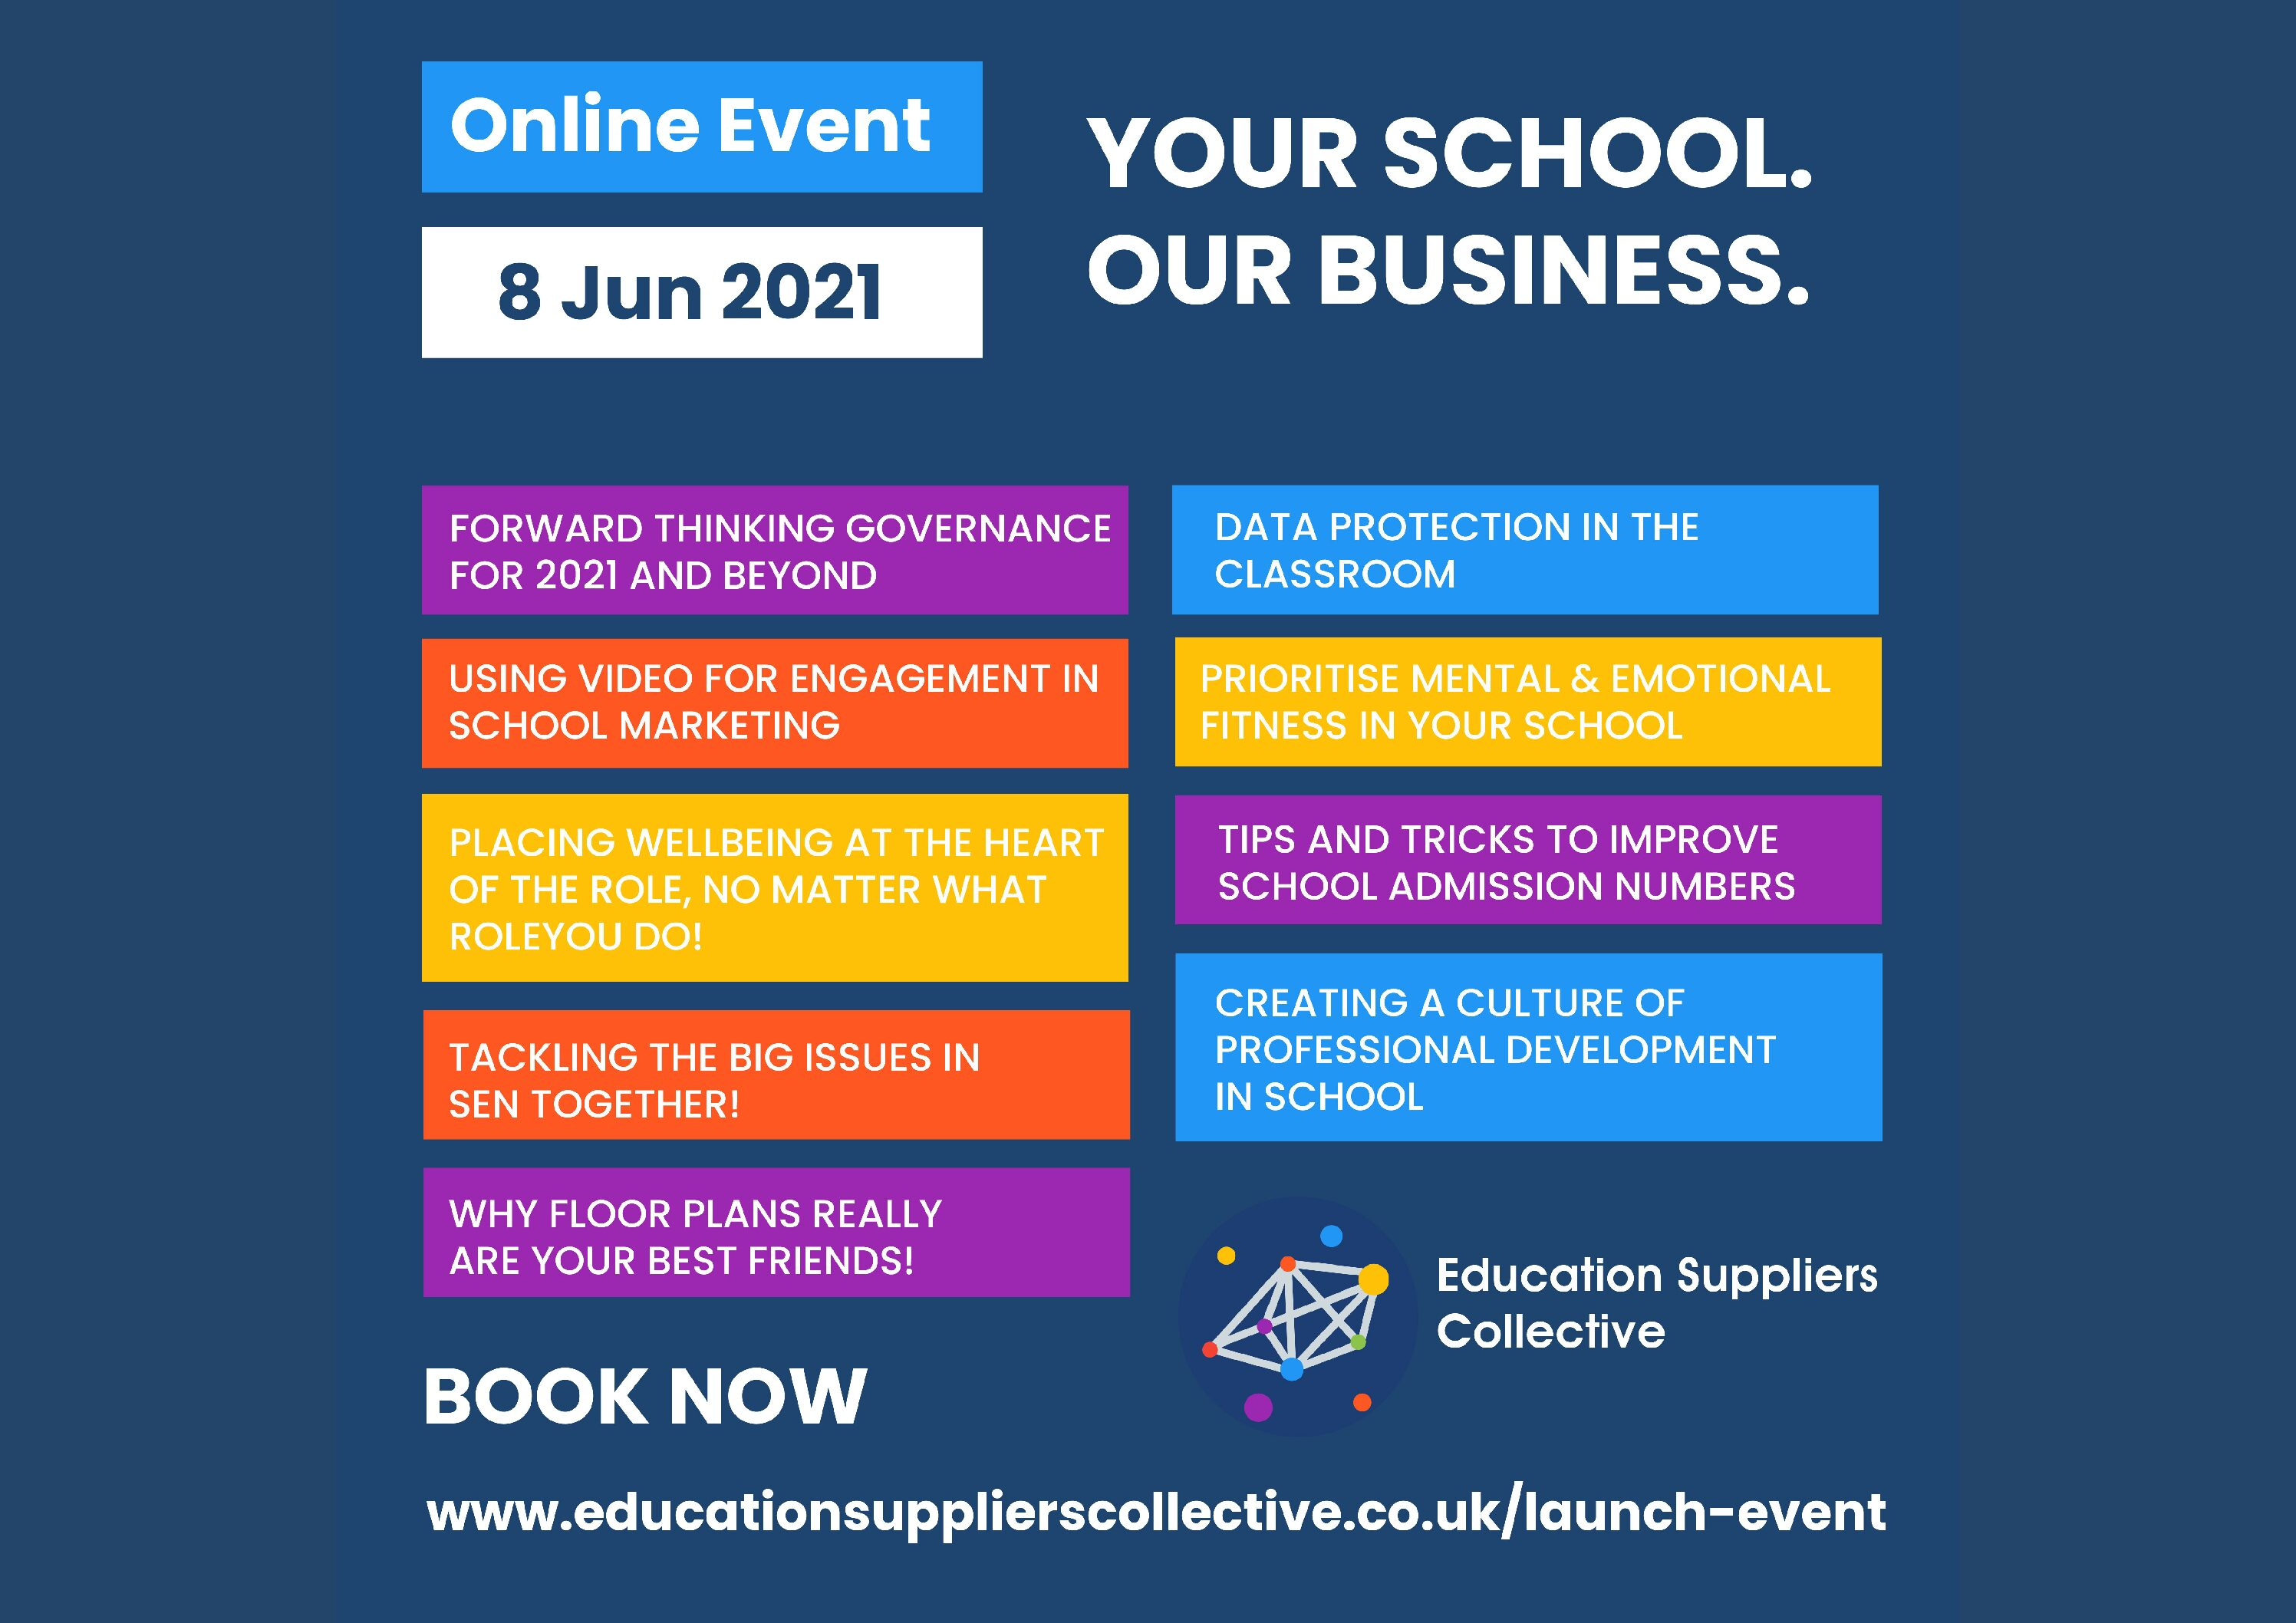 Education Suppliers Collective launches